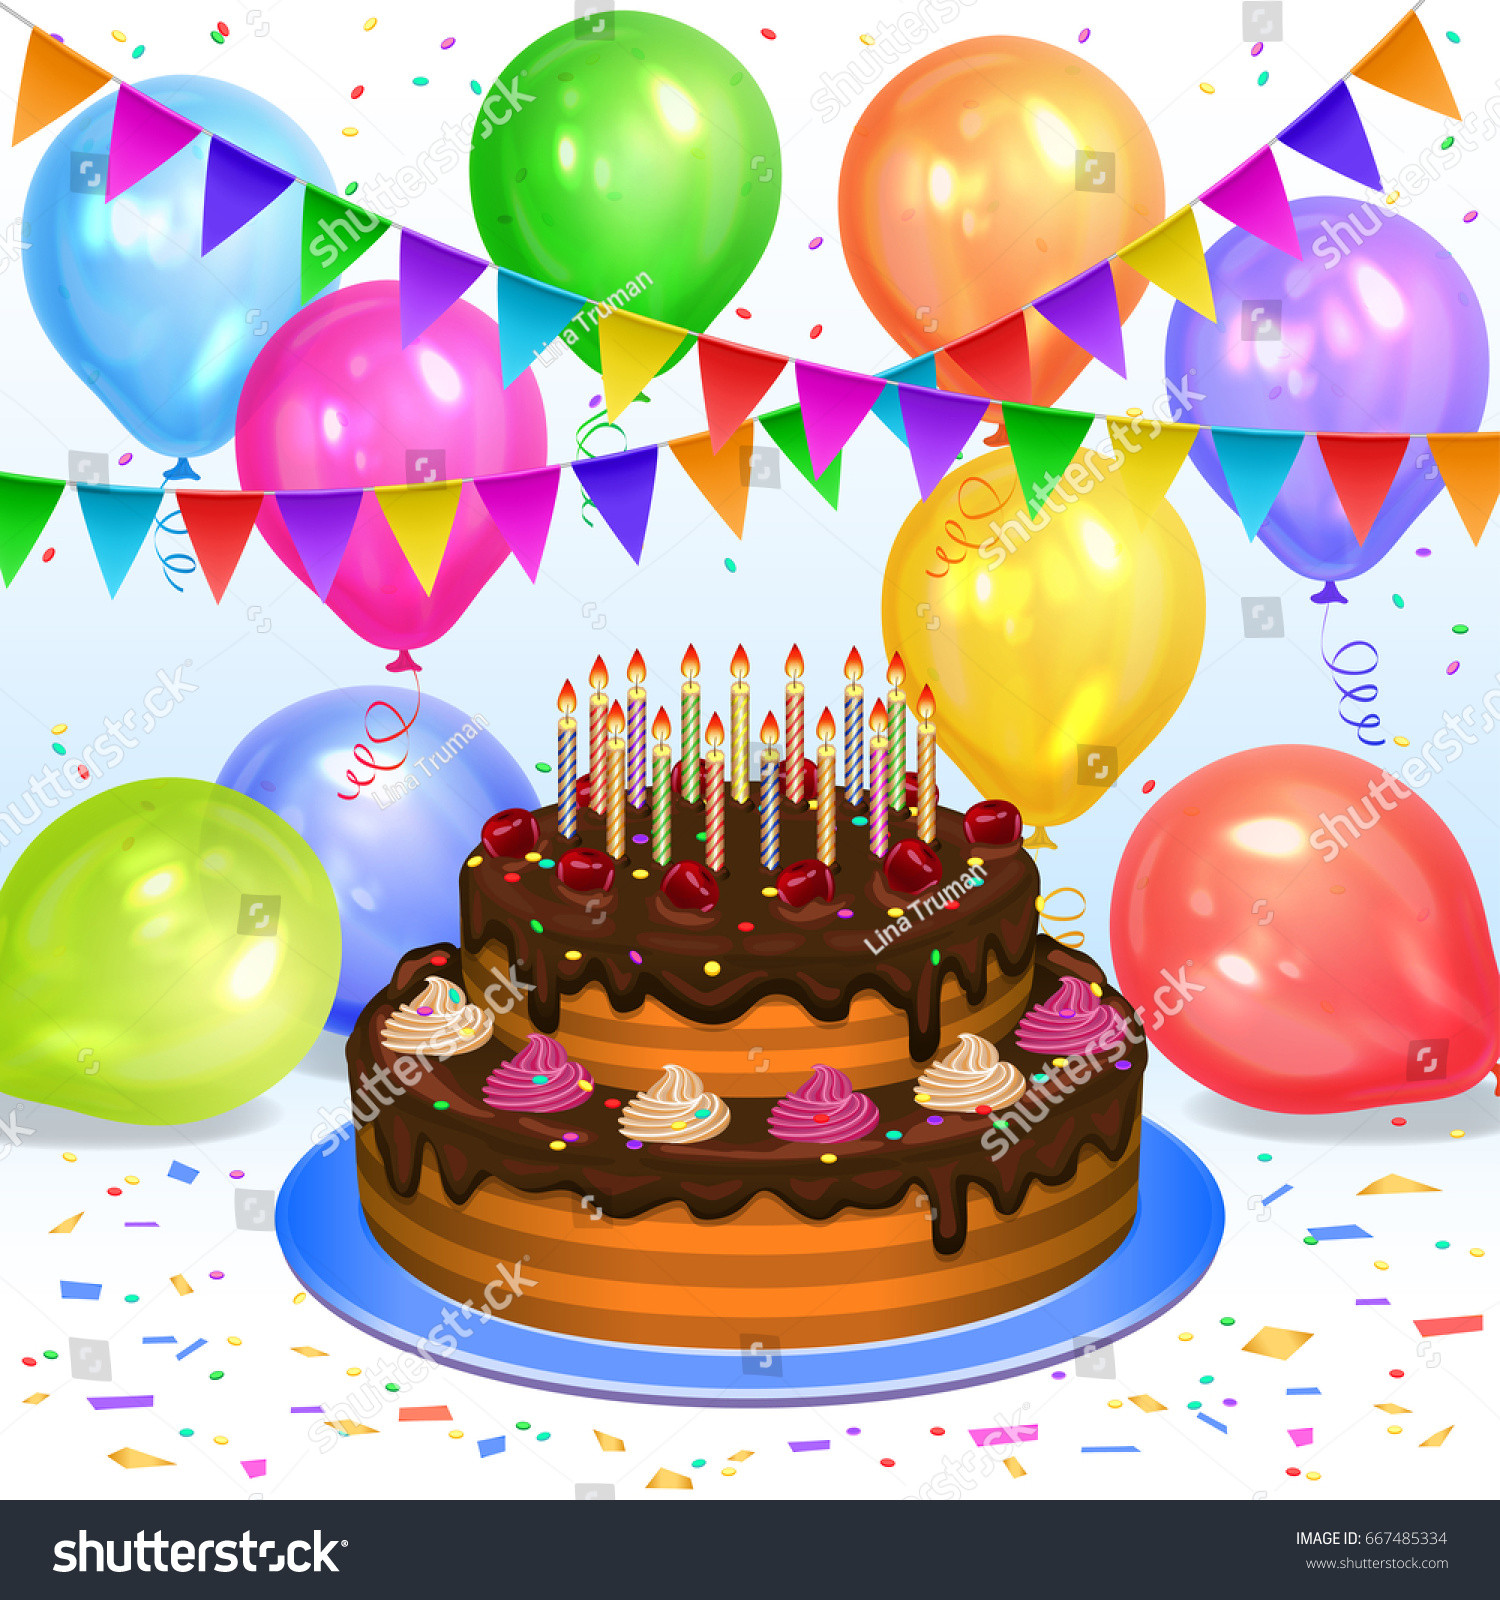 Birthday Cake With Candles And Balloons  Birthday Cake Candles Colorful Balloons Confetti Stock